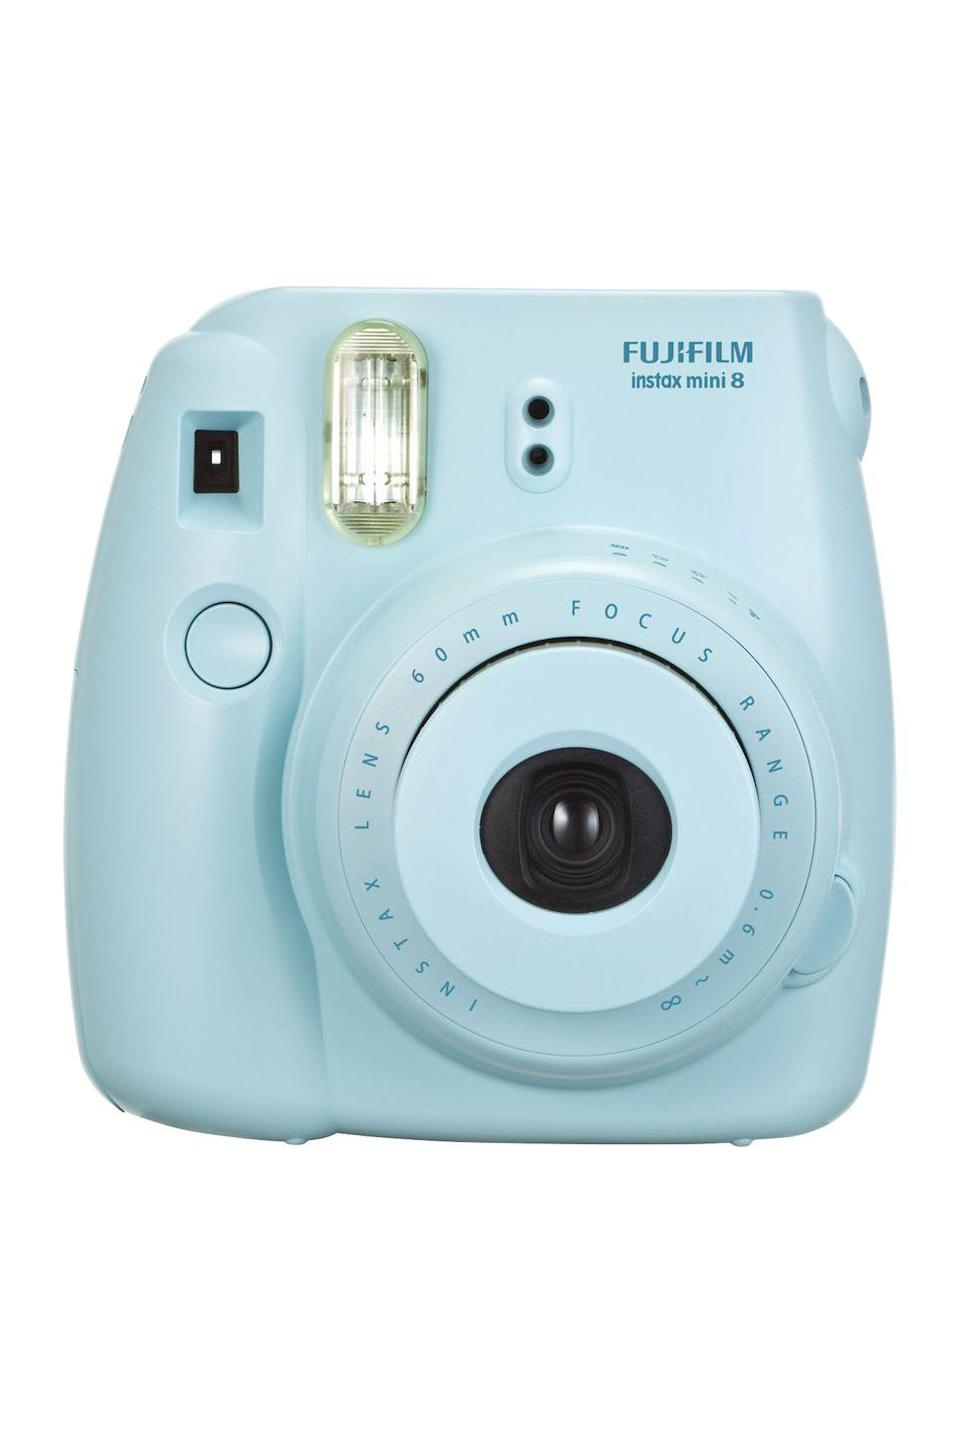 """<p><a rel=""""nofollow noopener"""" href=""""https://www.amazon.com/Fujifilm-Instax-Mini-Instant-Pink/dp/B00AWKJPOA"""" target=""""_blank"""" data-ylk=""""slk:BUY NOW"""" class=""""link rapid-noclick-resp"""">BUY NOW</a> <strong><em>$62.36, Amazon</em></strong></p><p>Polaroid-style photos are a click away thanks to this instant camera, which also has automatic exposure measurement for perfect pictures every time. </p>"""